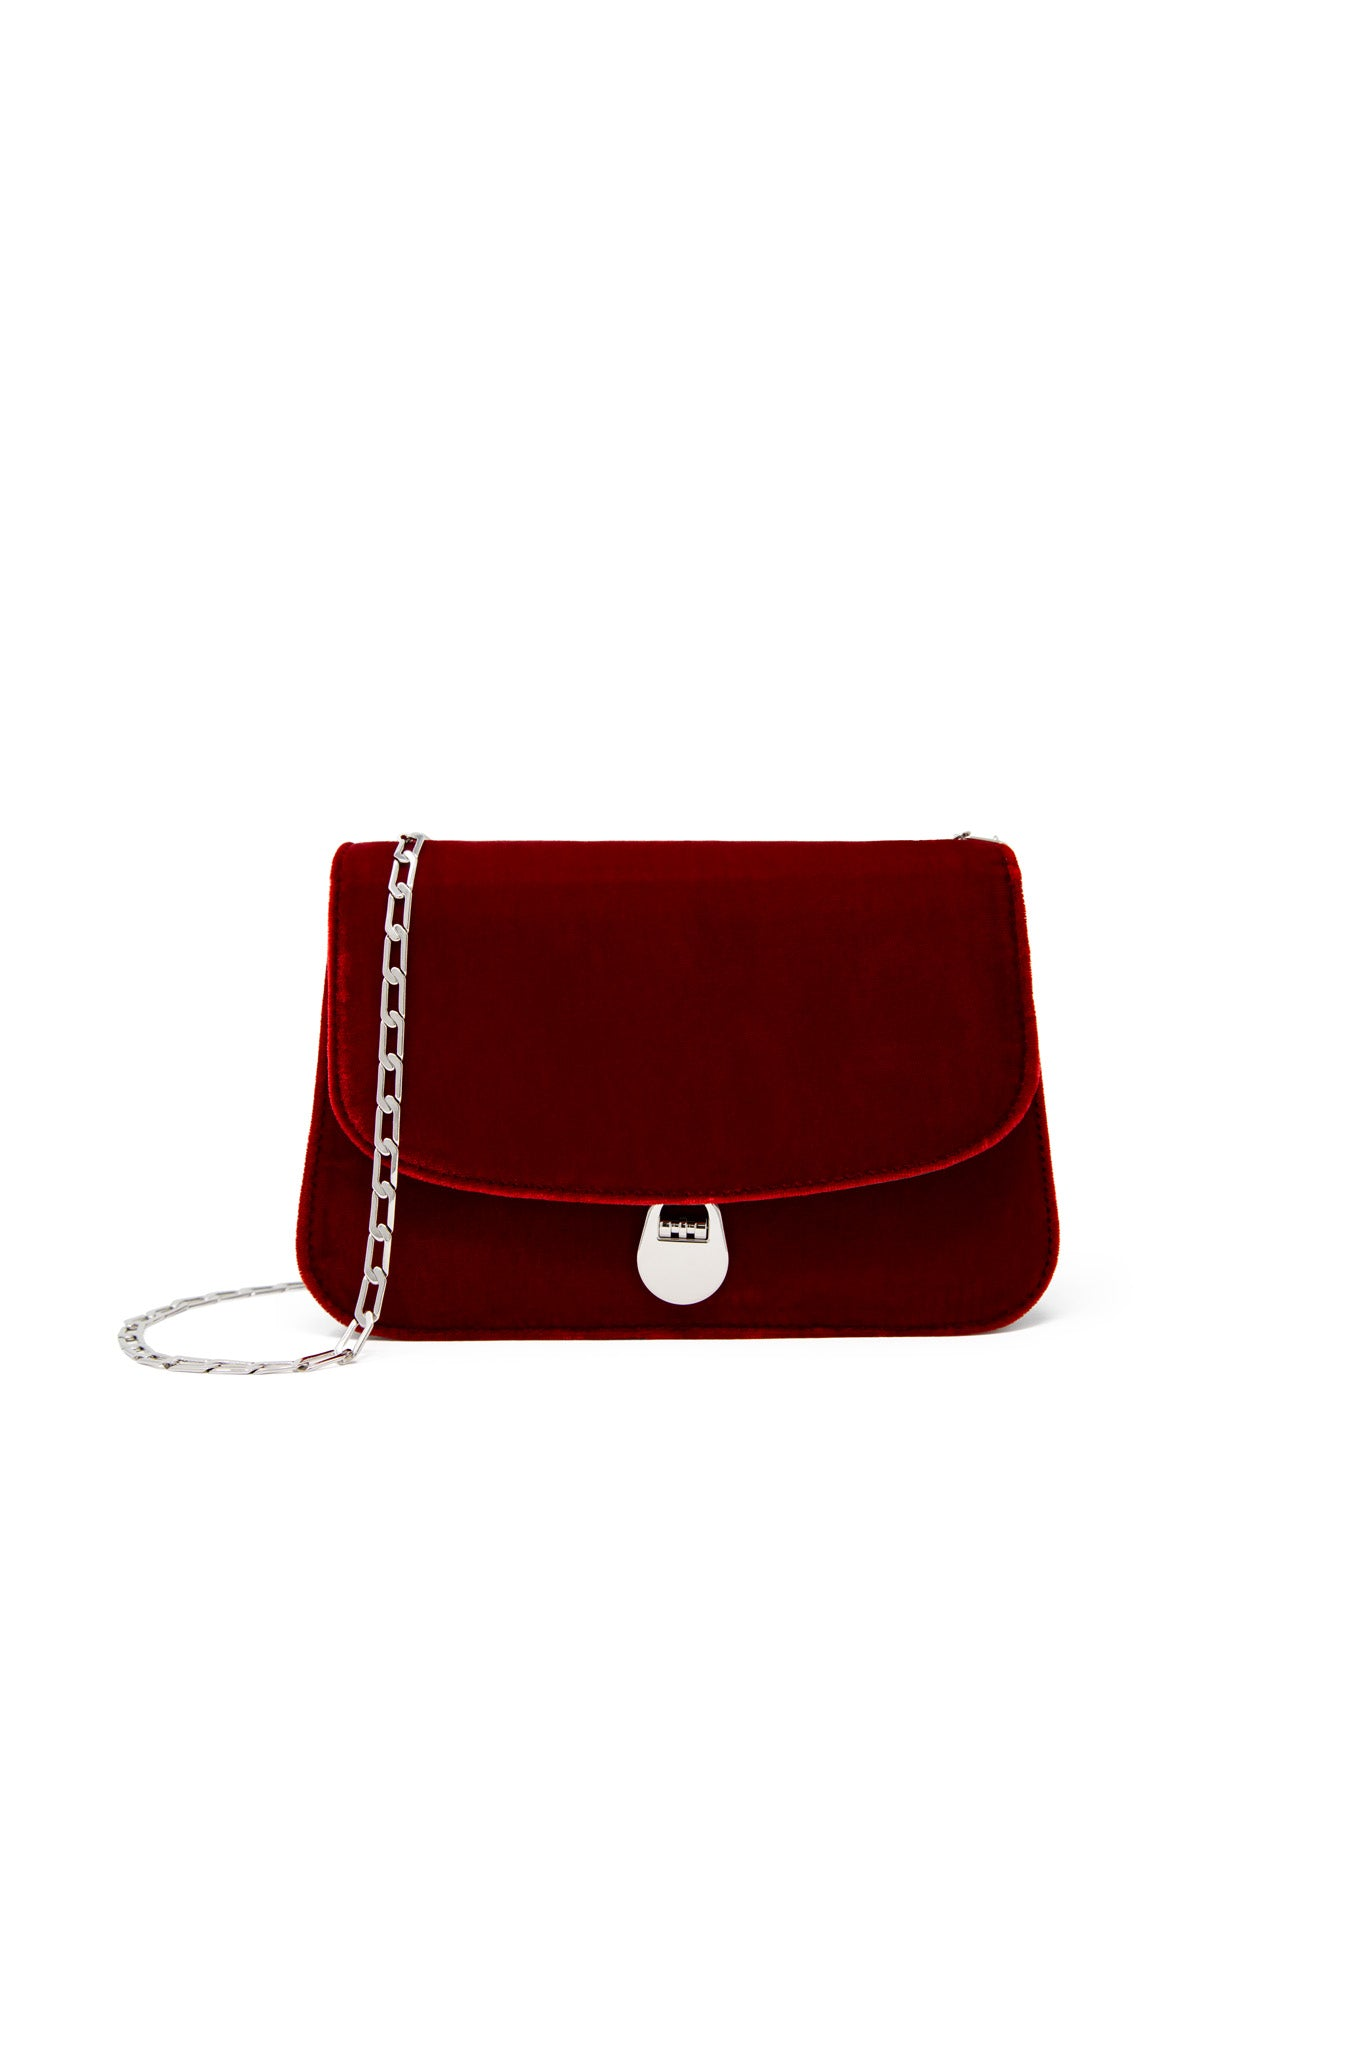 Sabi Shoulder Bag in Red Velvet